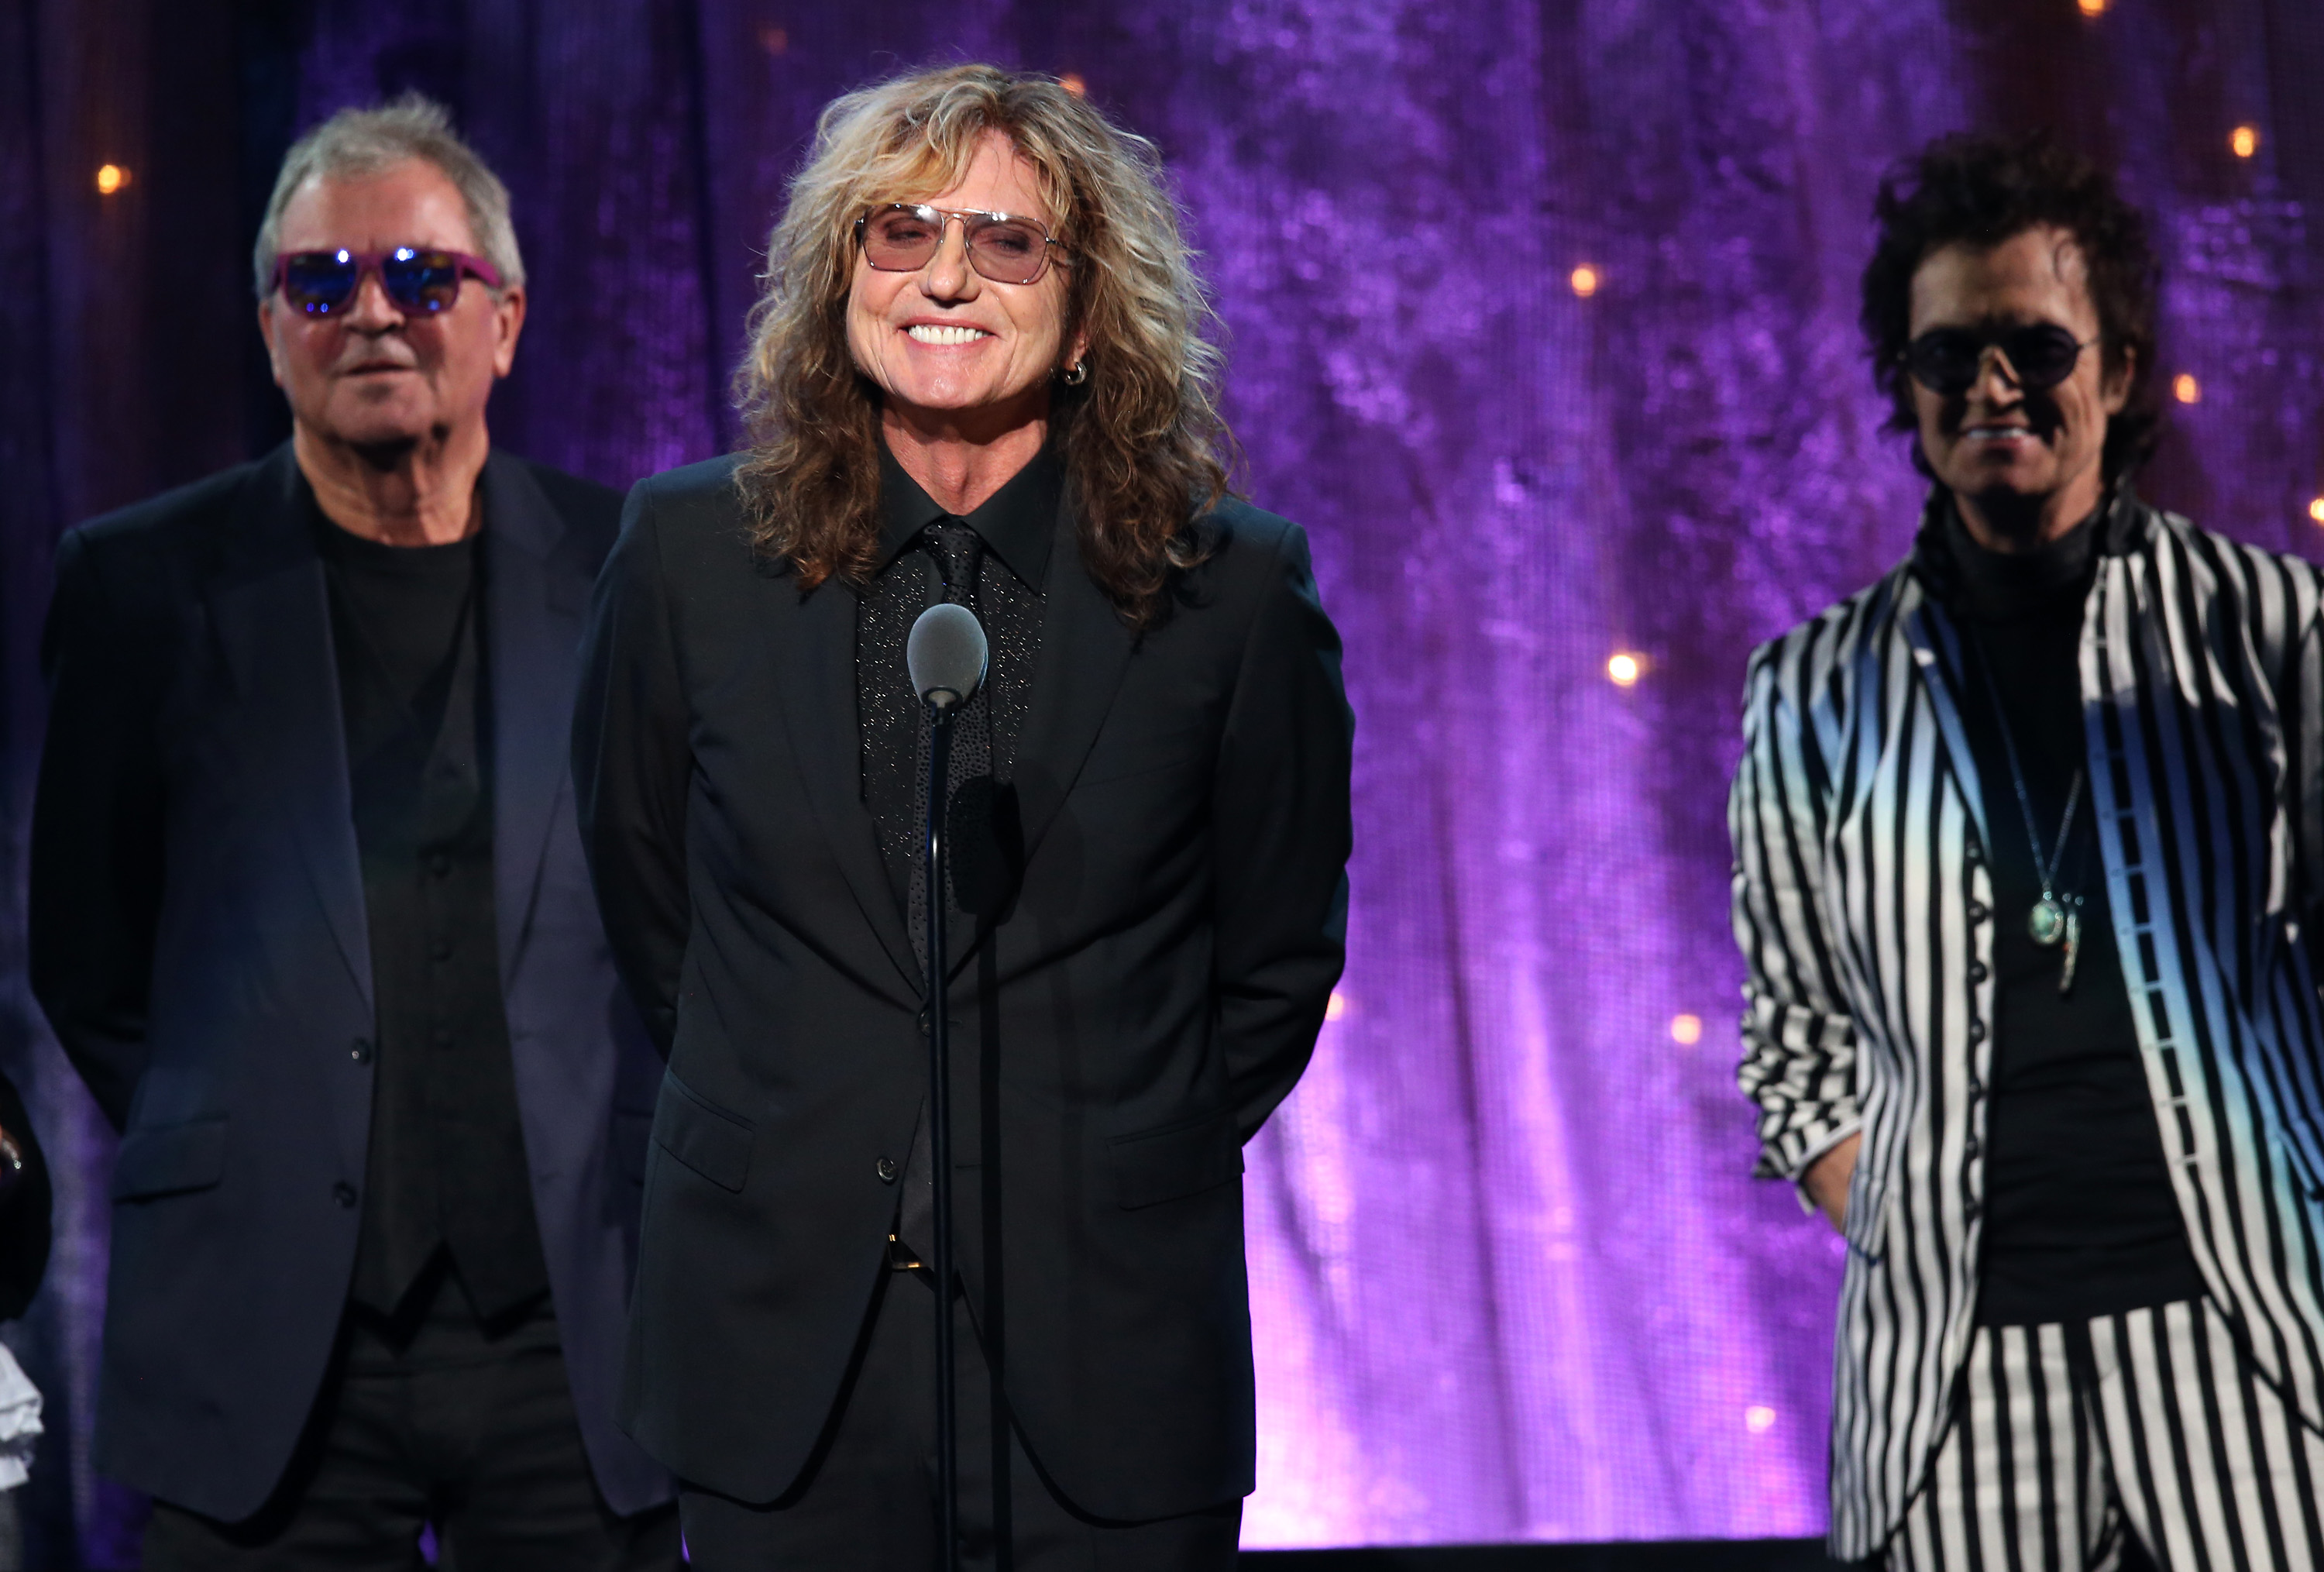 """NEW YORK, NEW YORK - APRIL 08: (L-R) Ian Gillian, David Coverdale, and Glenn Hughes of Deep Purple speak onstage at the 31st Annual Rock And Roll Hall Of Fame Induction Ceremony at Barclays Center of Brooklyn on April 8, 2016 in New York City. (Photo by Kevin Kane/WireImage for Rock and Roll Hall of Fame)"""